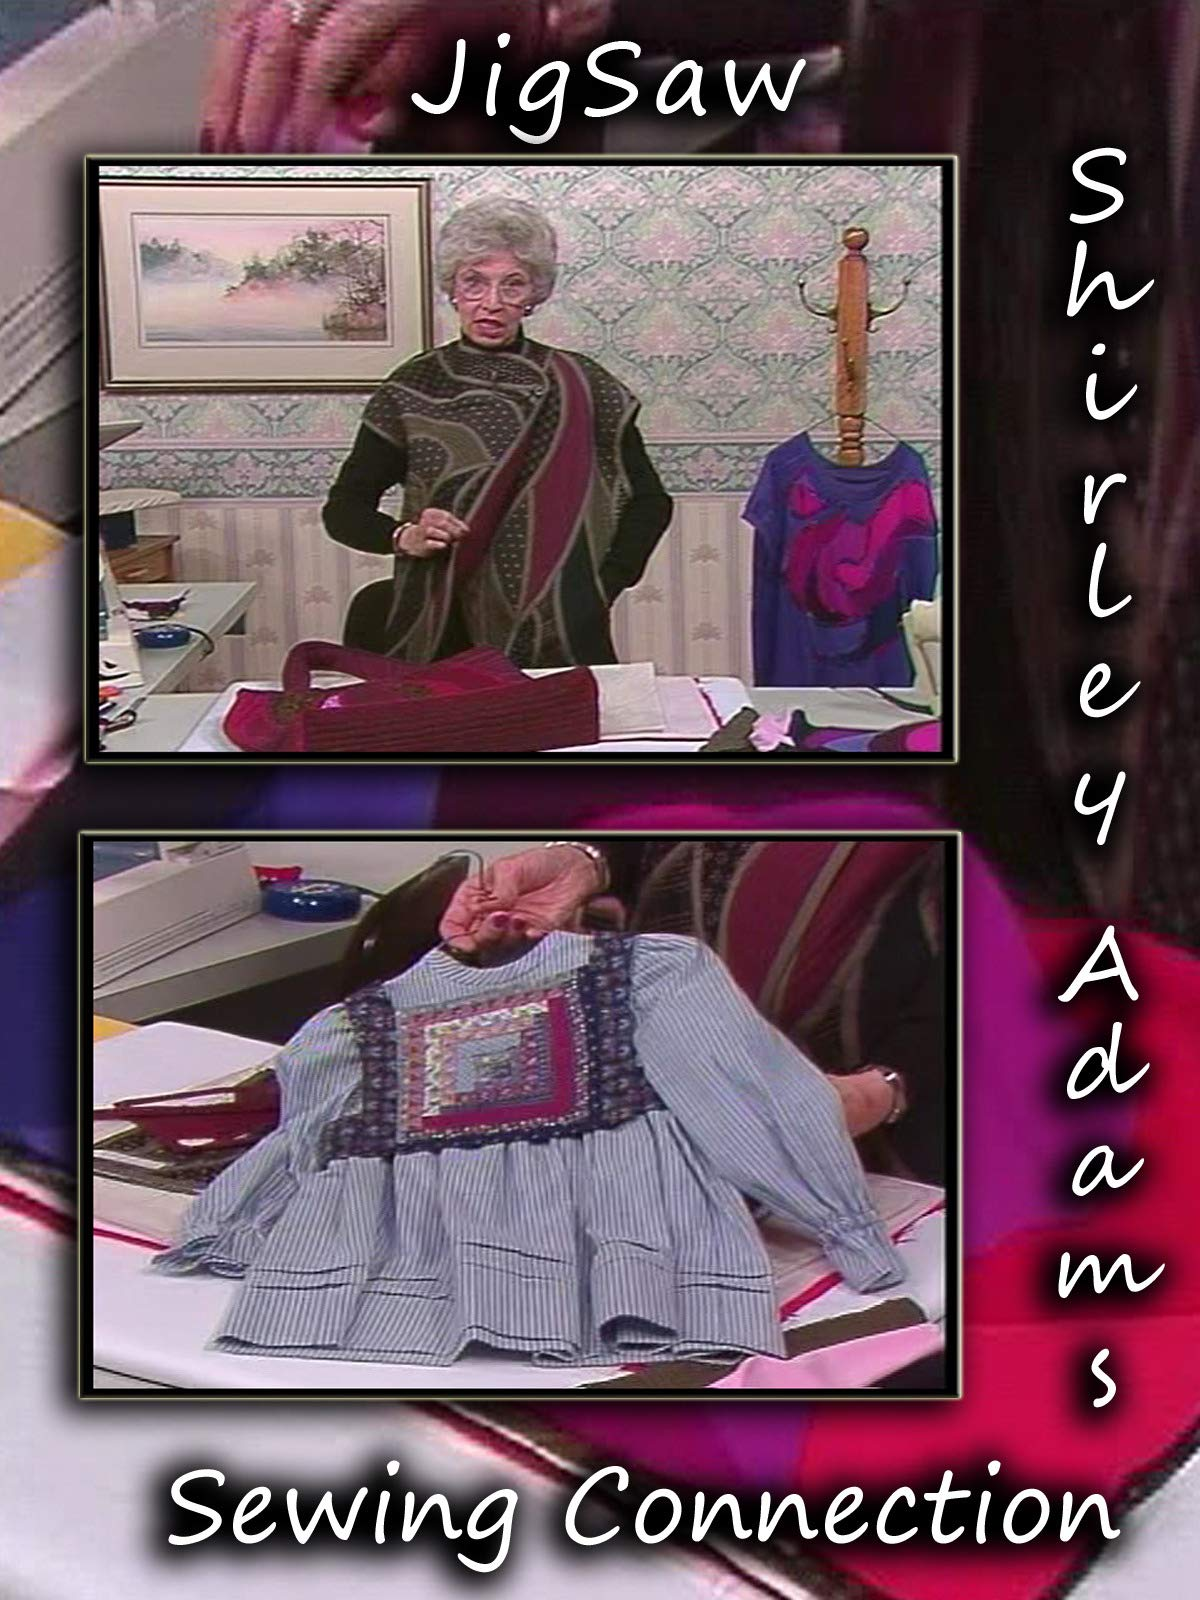 JigSaw with Shirley Adams Sewing Connection